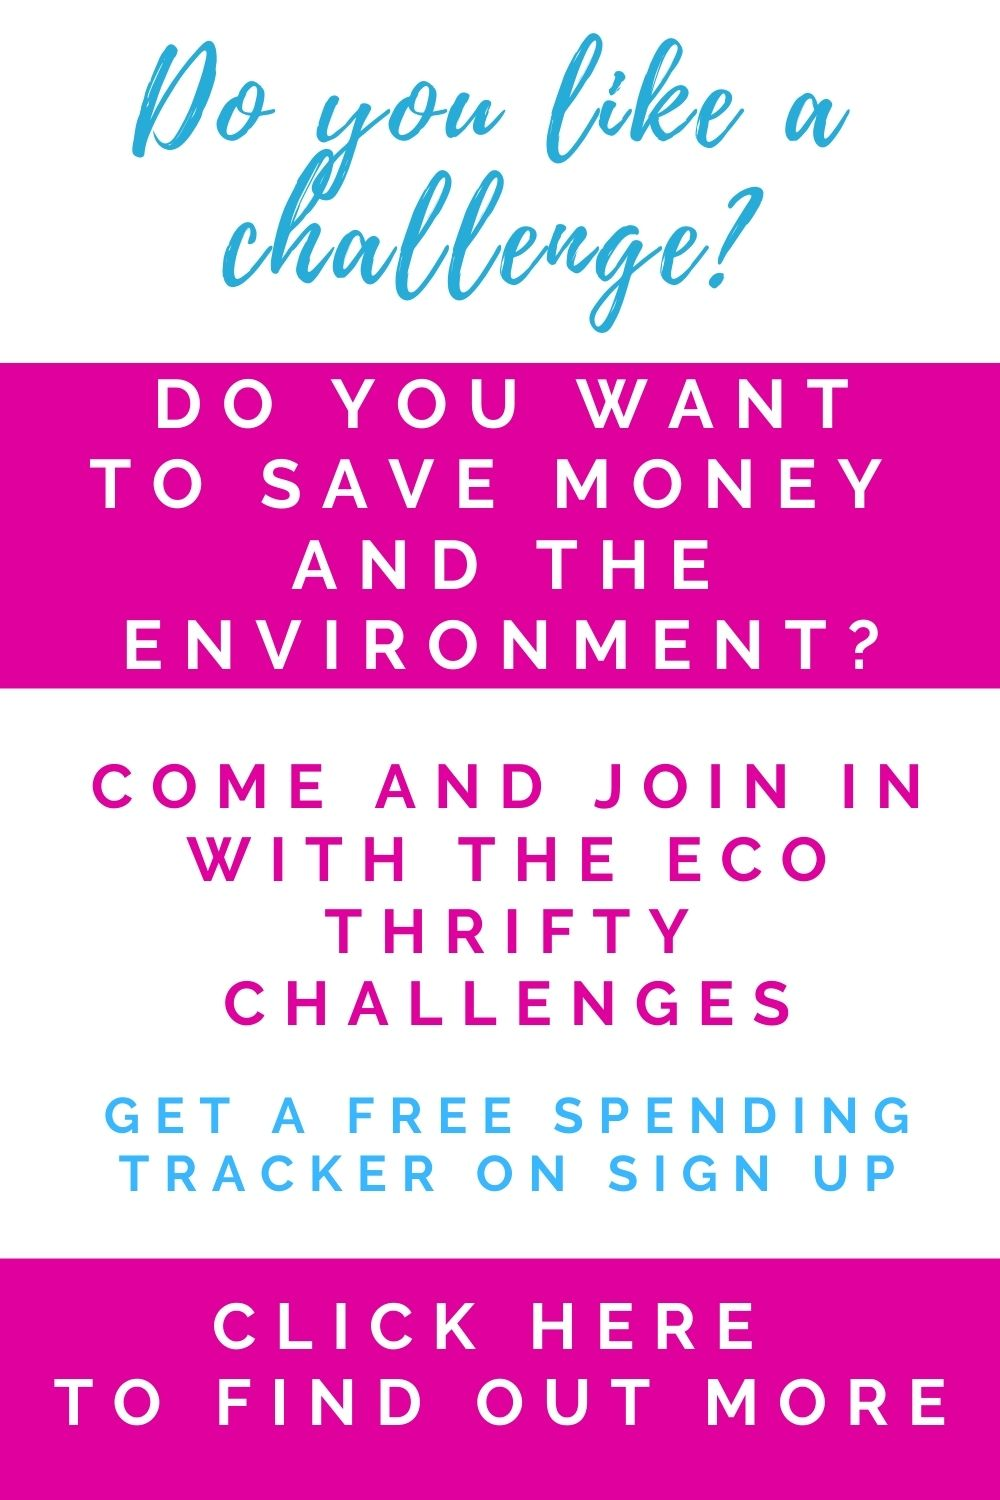 eco thrifty challenges